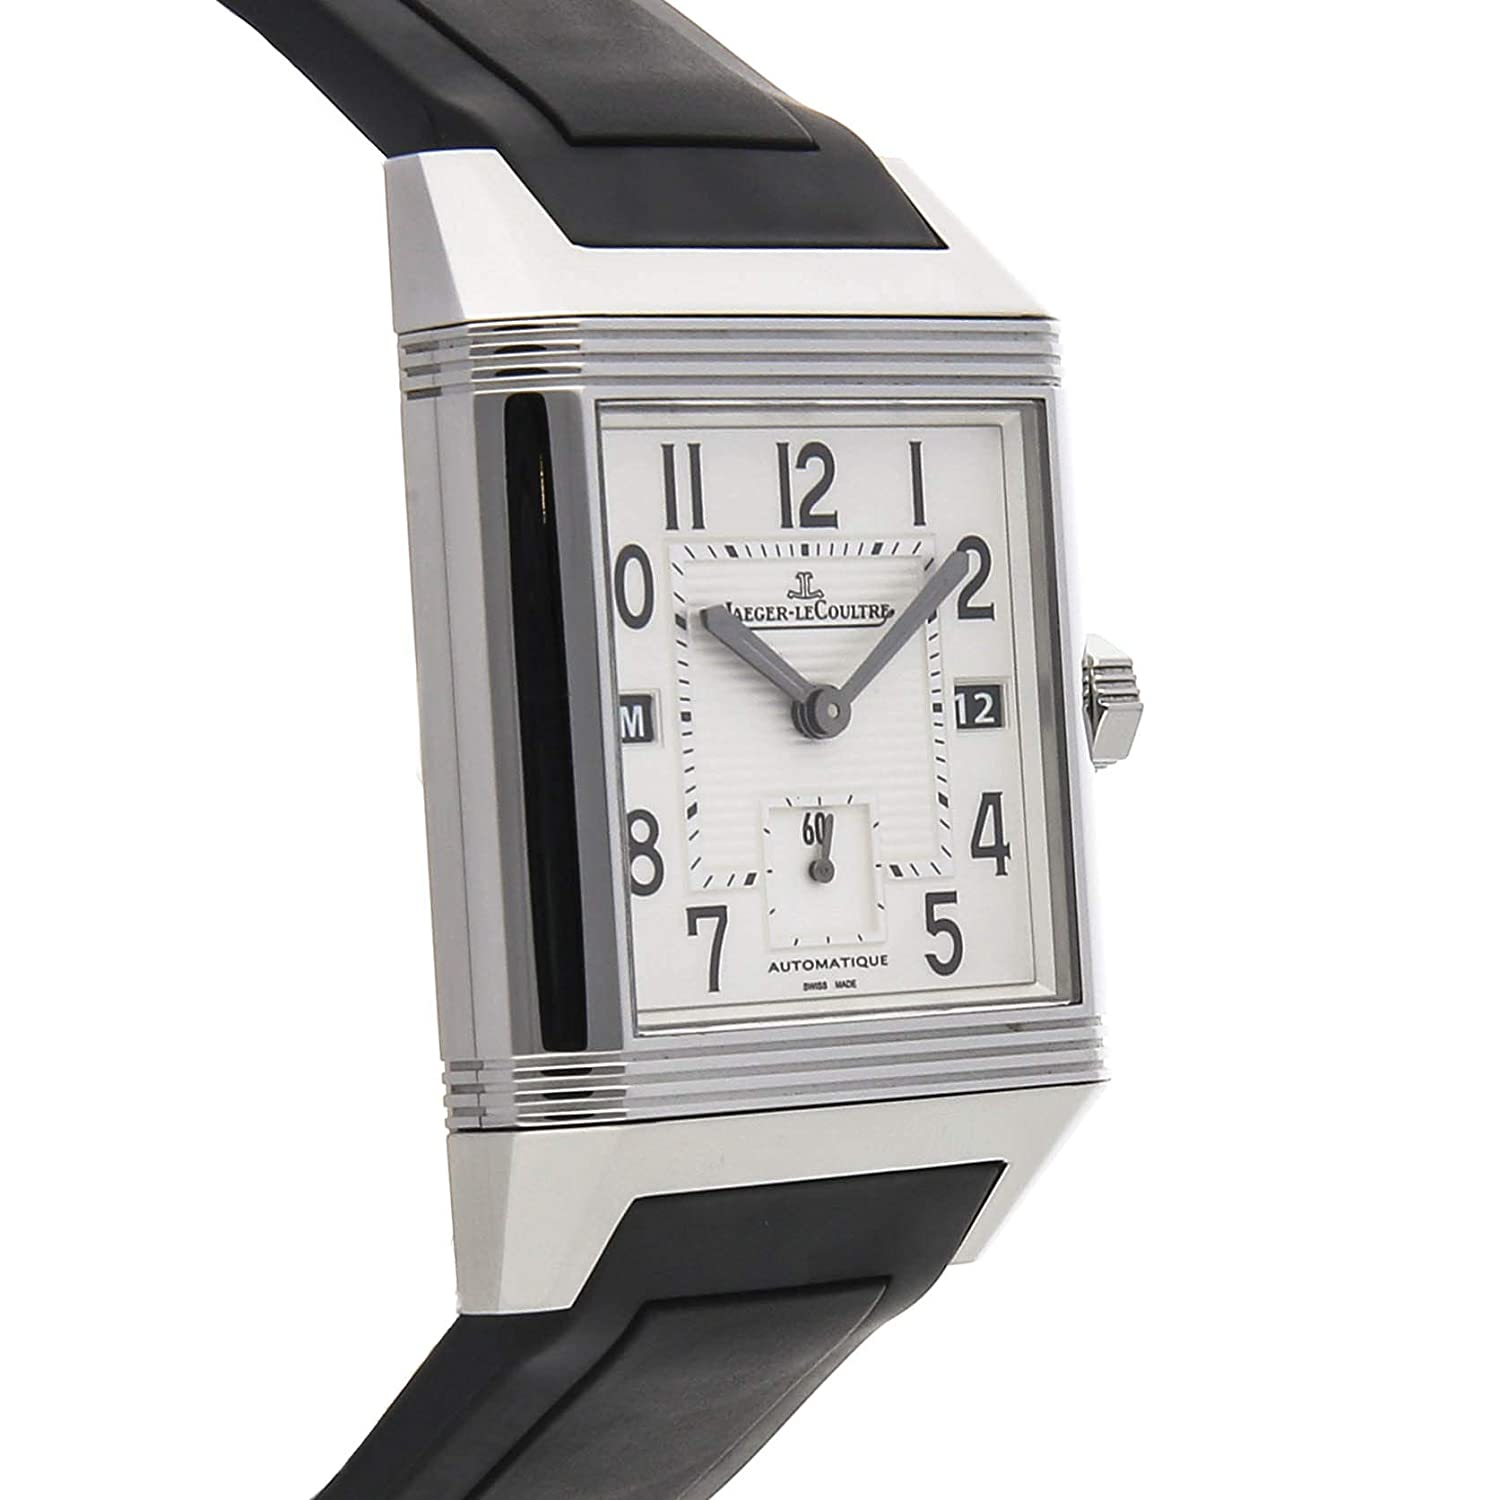 Amazon.com: Jaeger-LeCoultre Reverso Mechanical (Automatic) Silver Dial Mens Watch Q7008620 (Certified Pre-Owned): Jaeger-LeCoultre: Watches